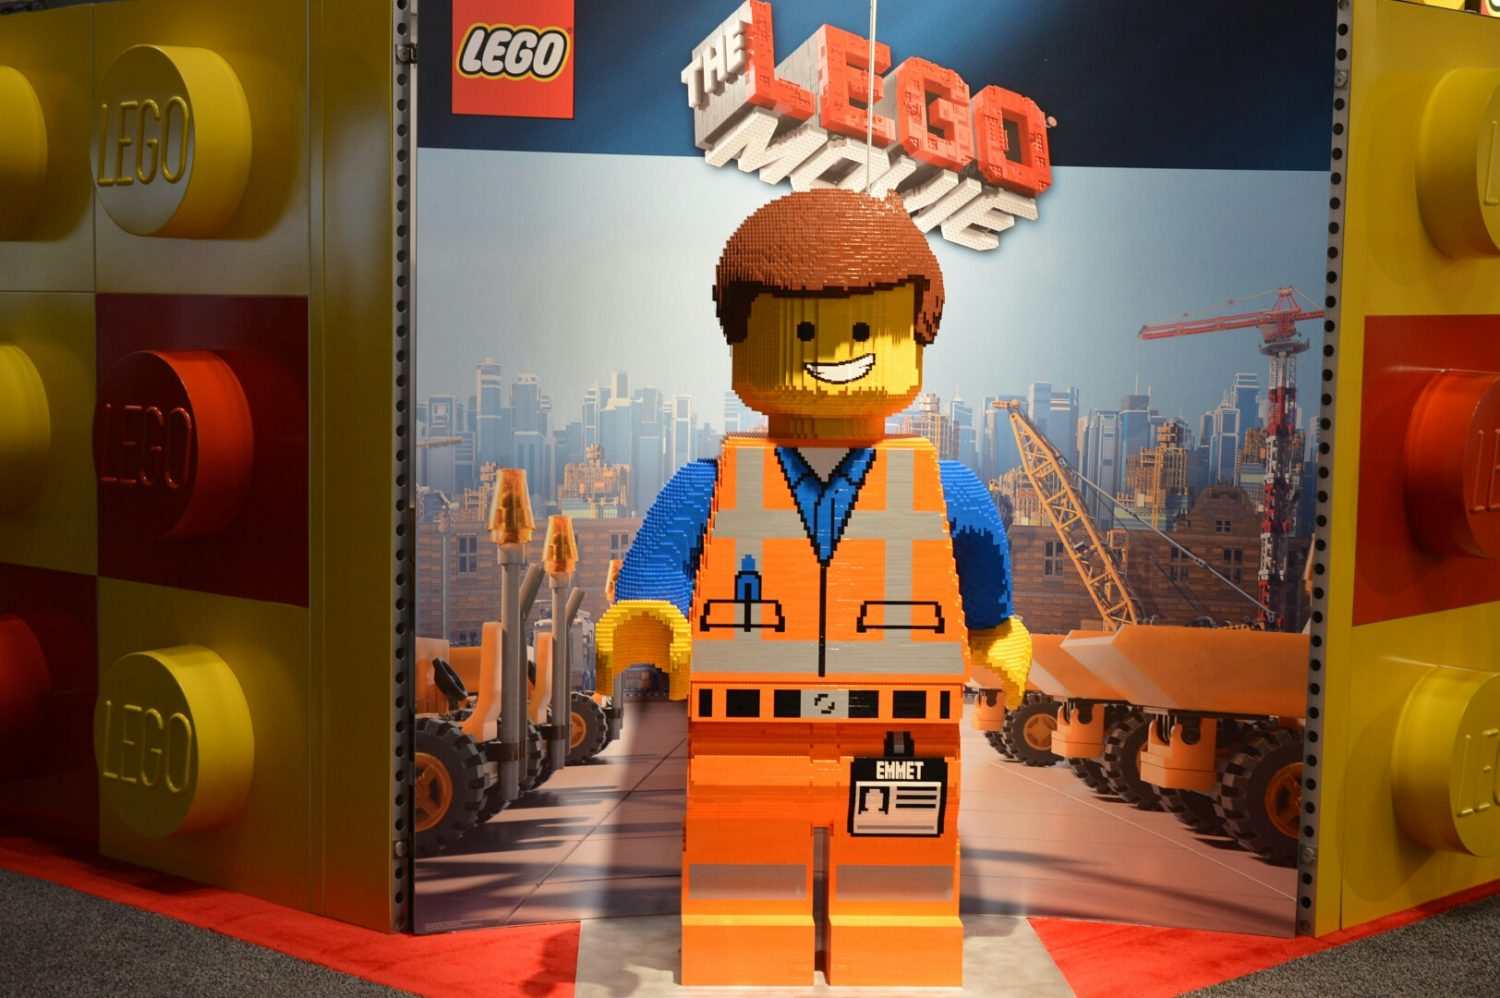 NYTF 2014 – LEGO Life-Size Movie Figure On Display